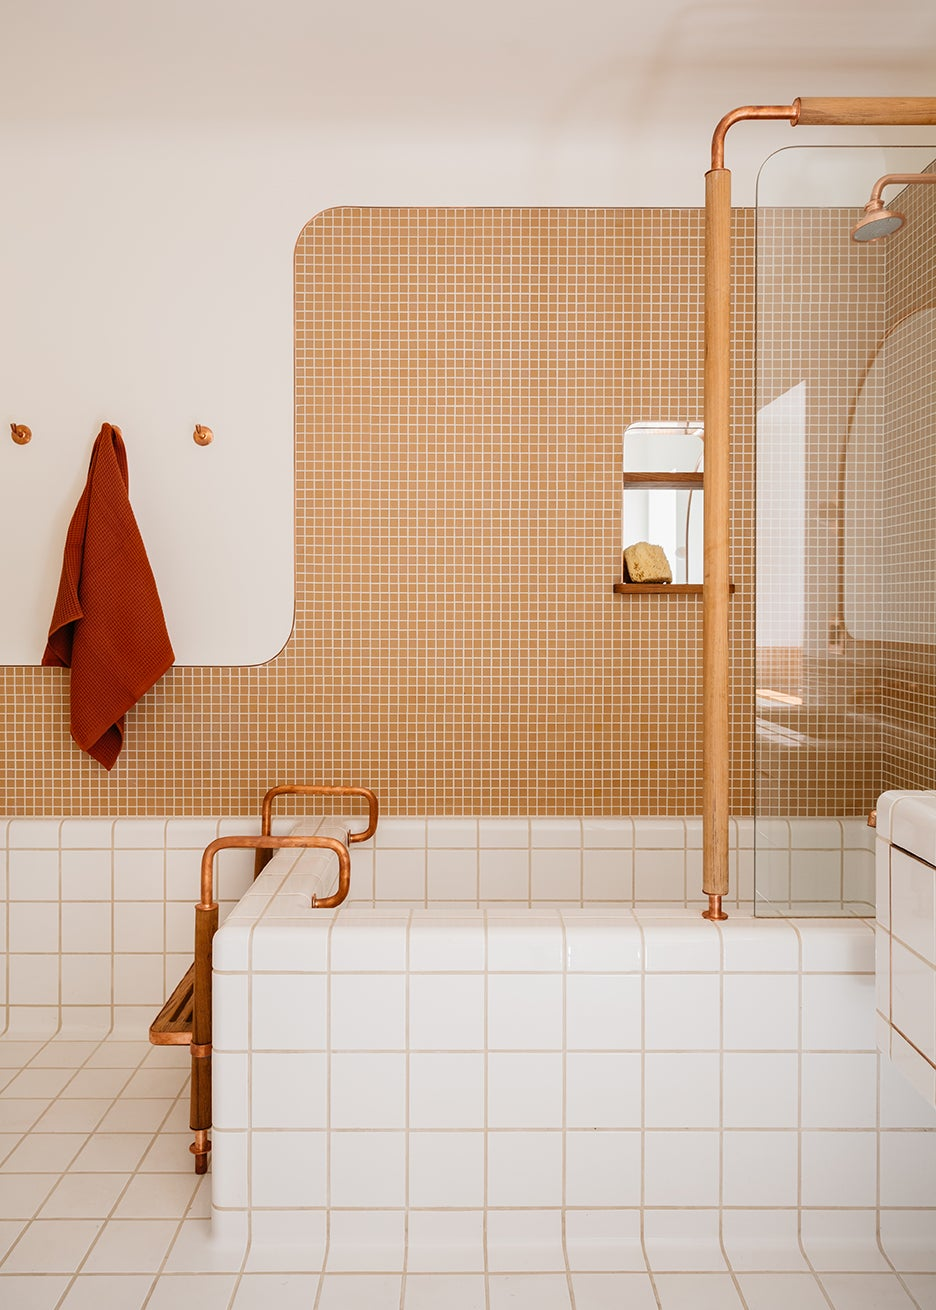 tiled tub with ladder